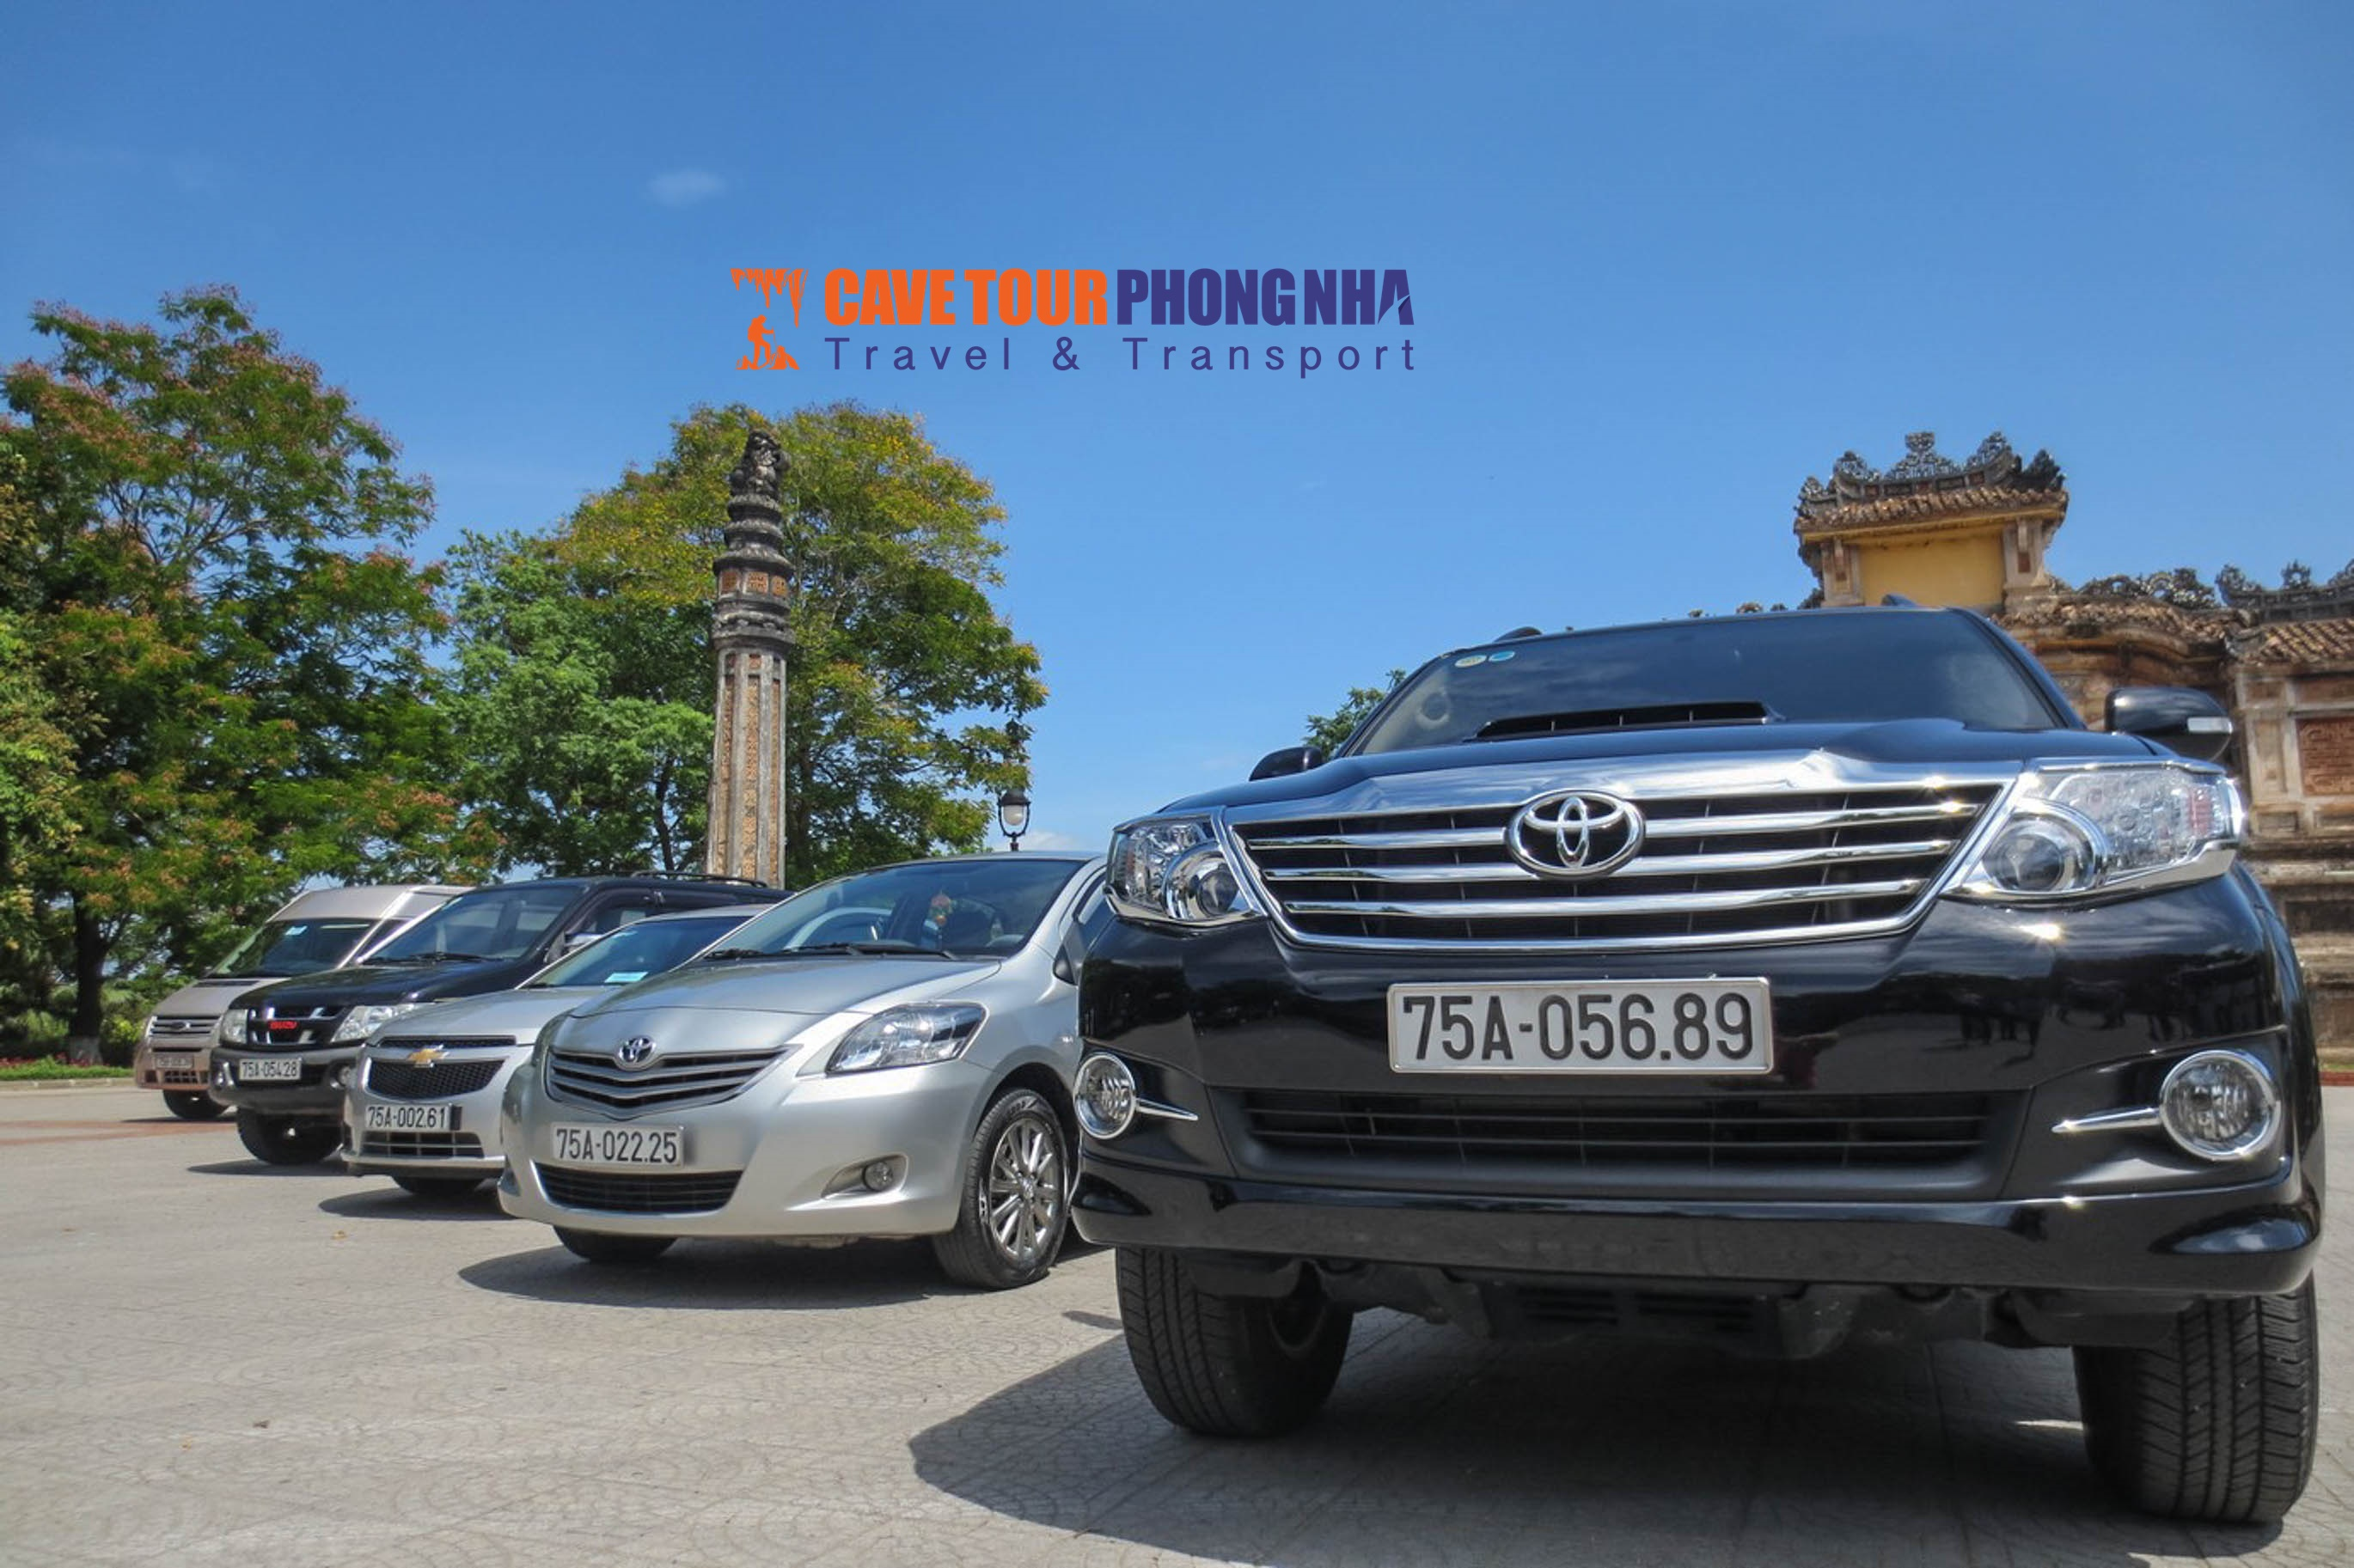 Da Nang to Phong Nha by private car